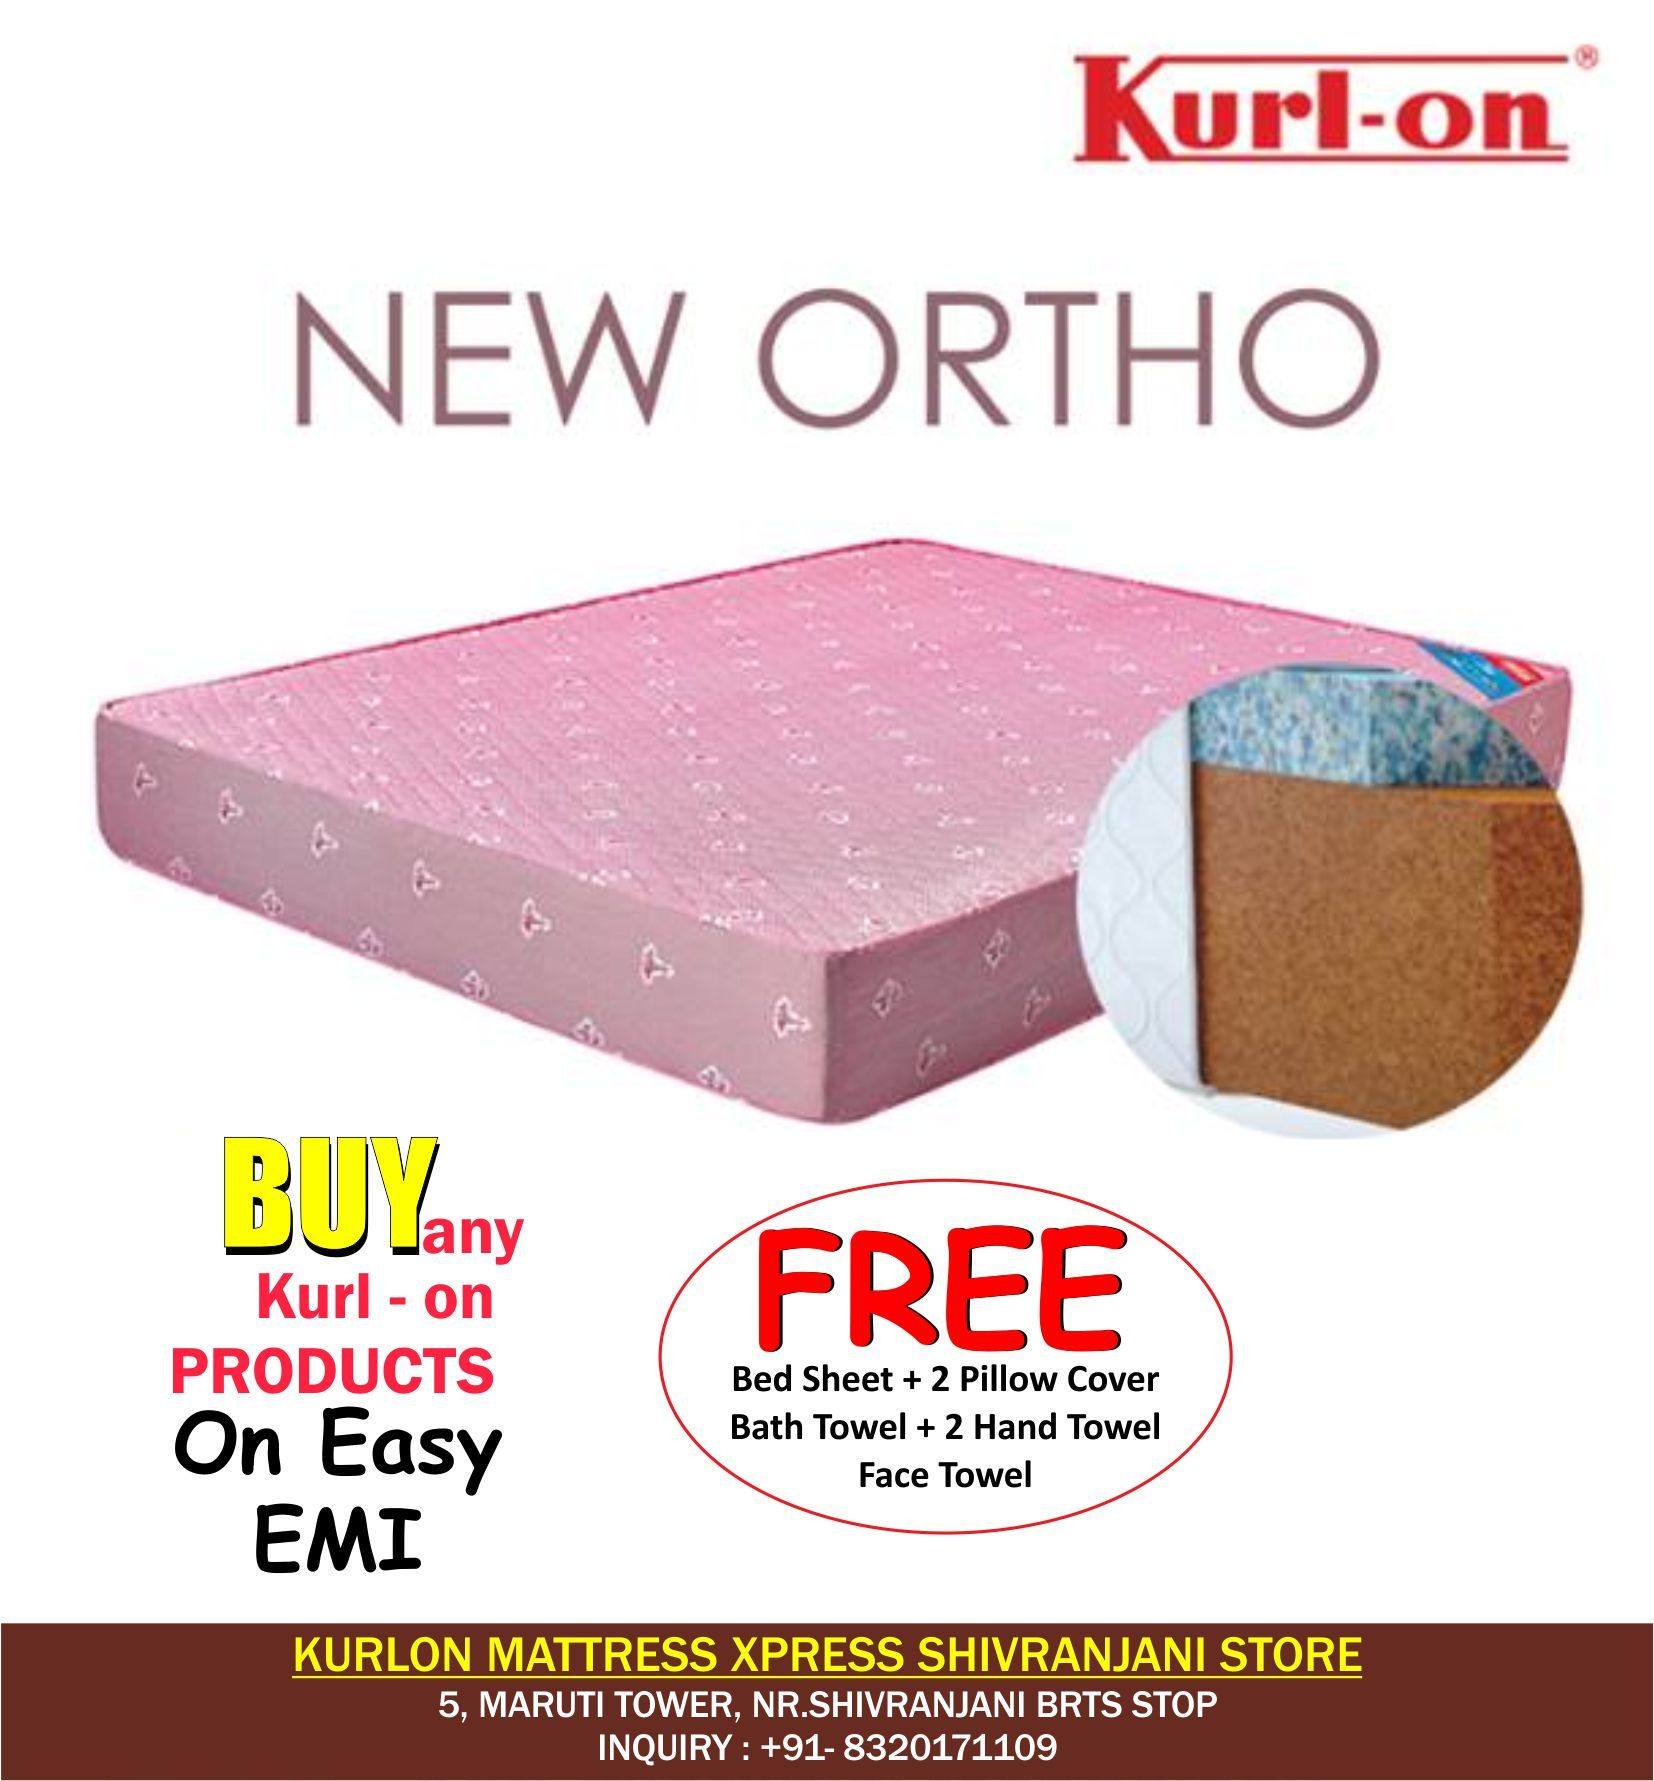 Pay Rs.1 & Get Mattress On Easy EMI Get Free Bedsheet